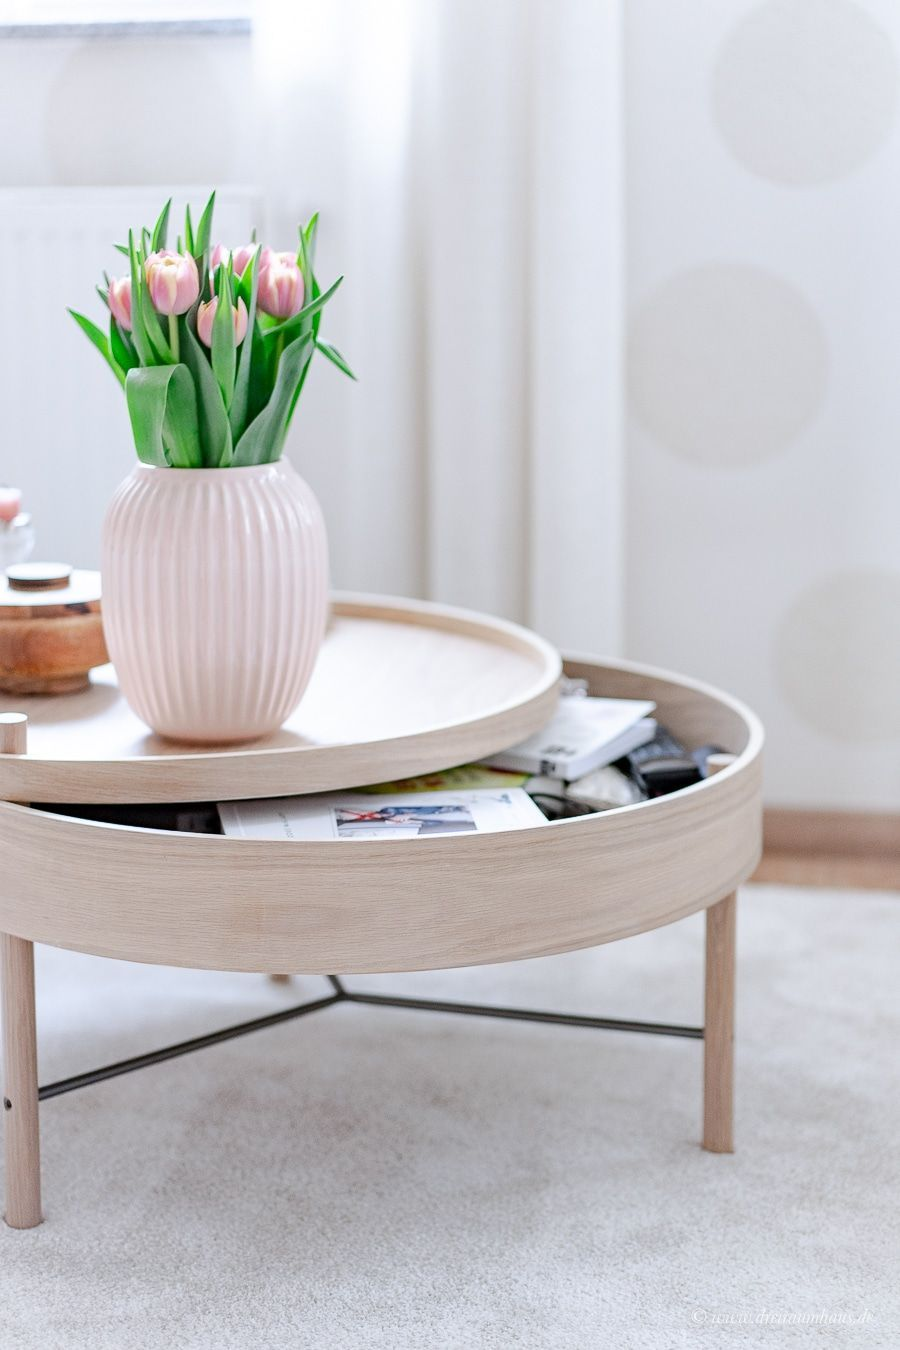 Dekosamstag Diese 10 Couchtische Bedeuten Wohnglück Bedeuten Couchtisch Couchtische Dekosamsta Coffee Table Home Furnishing Accessories Ikea Side Table